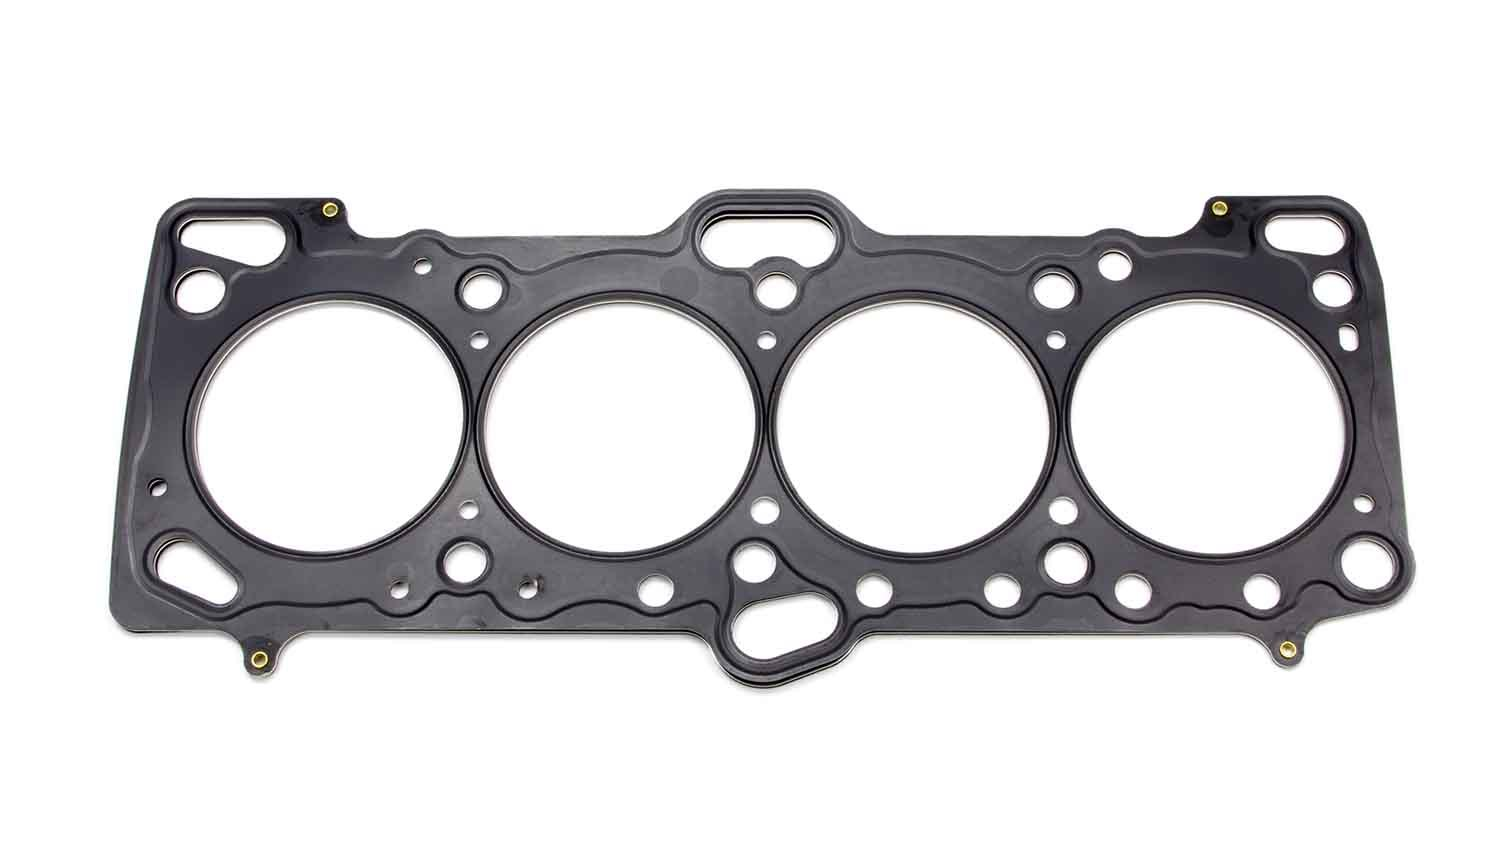 Cometic Gaskets C4235-051 Cylinder Head Gasket, 87.0 mm Bore, 0.051 in Compression Thickness, Multi-Layered Steel, Mitsubishi 4G63, Each